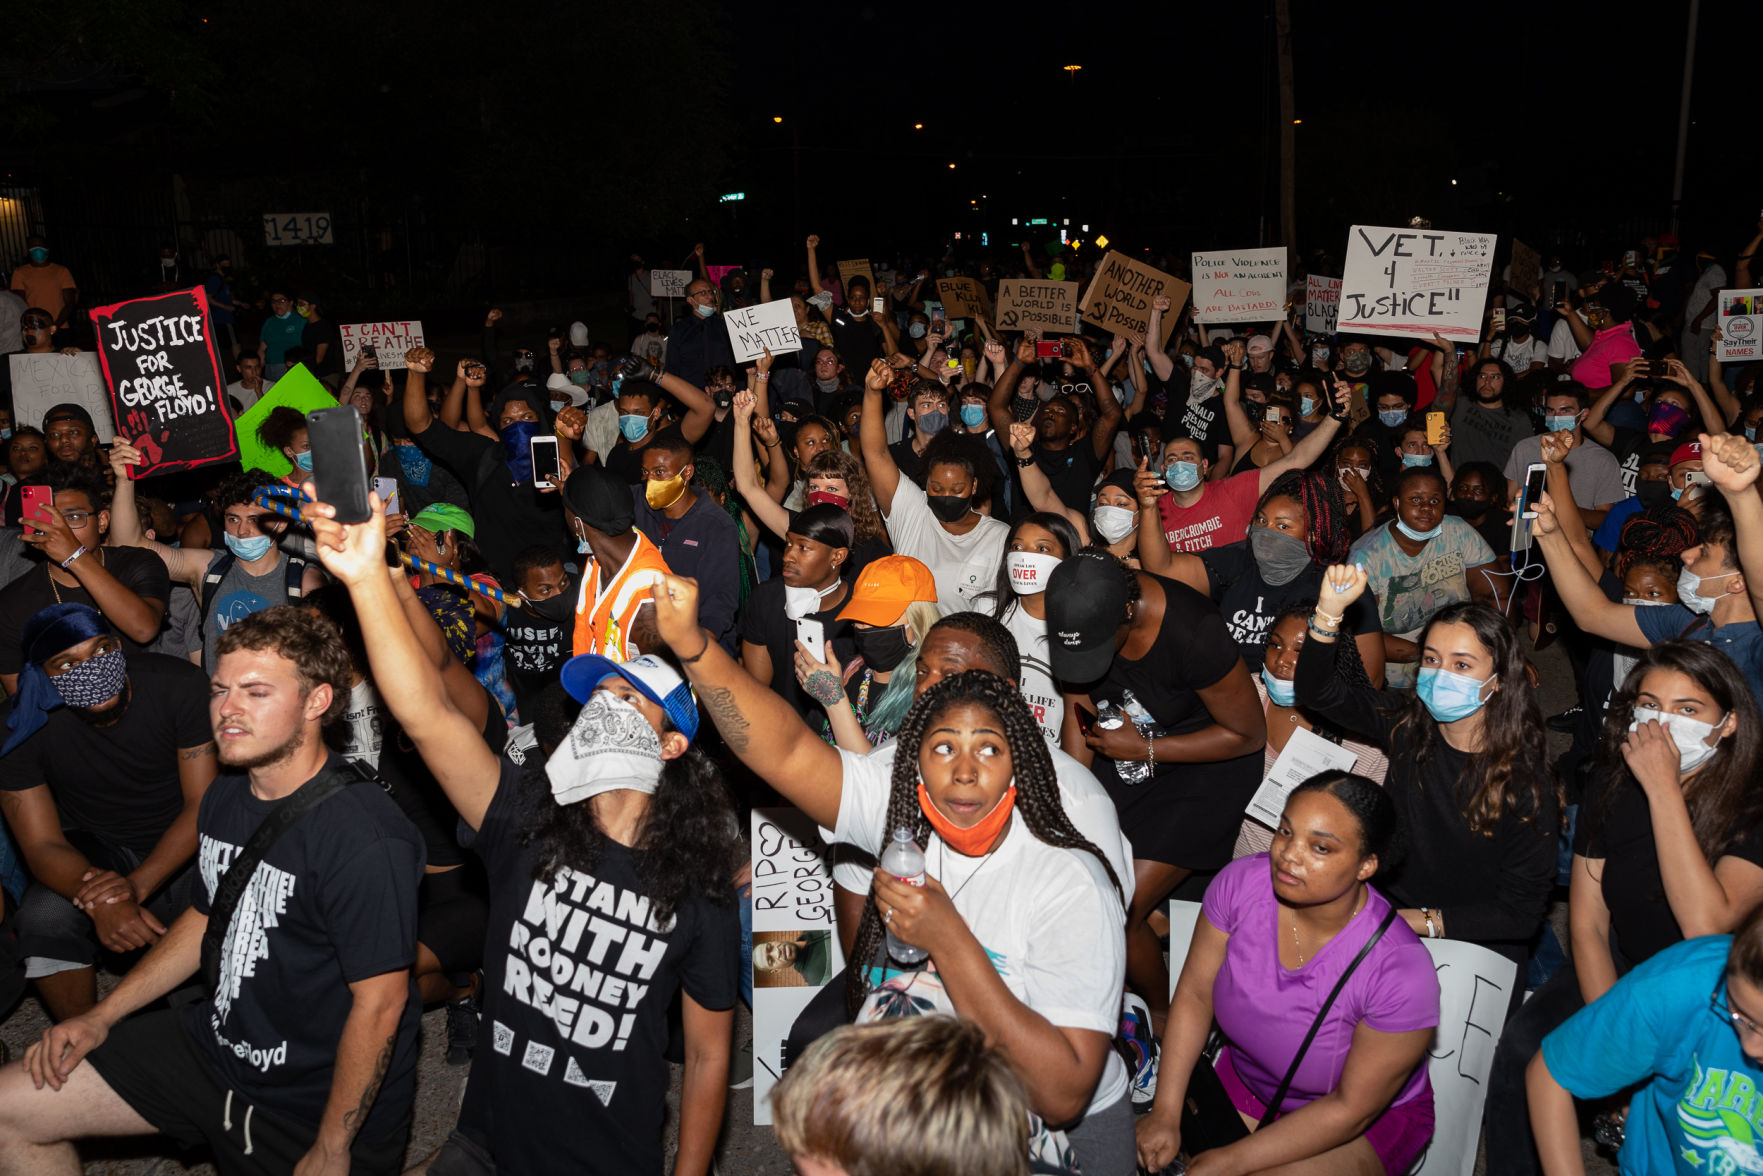 Photos: Protesters march in downtown Dallas demanding justice for black victims of police brutality